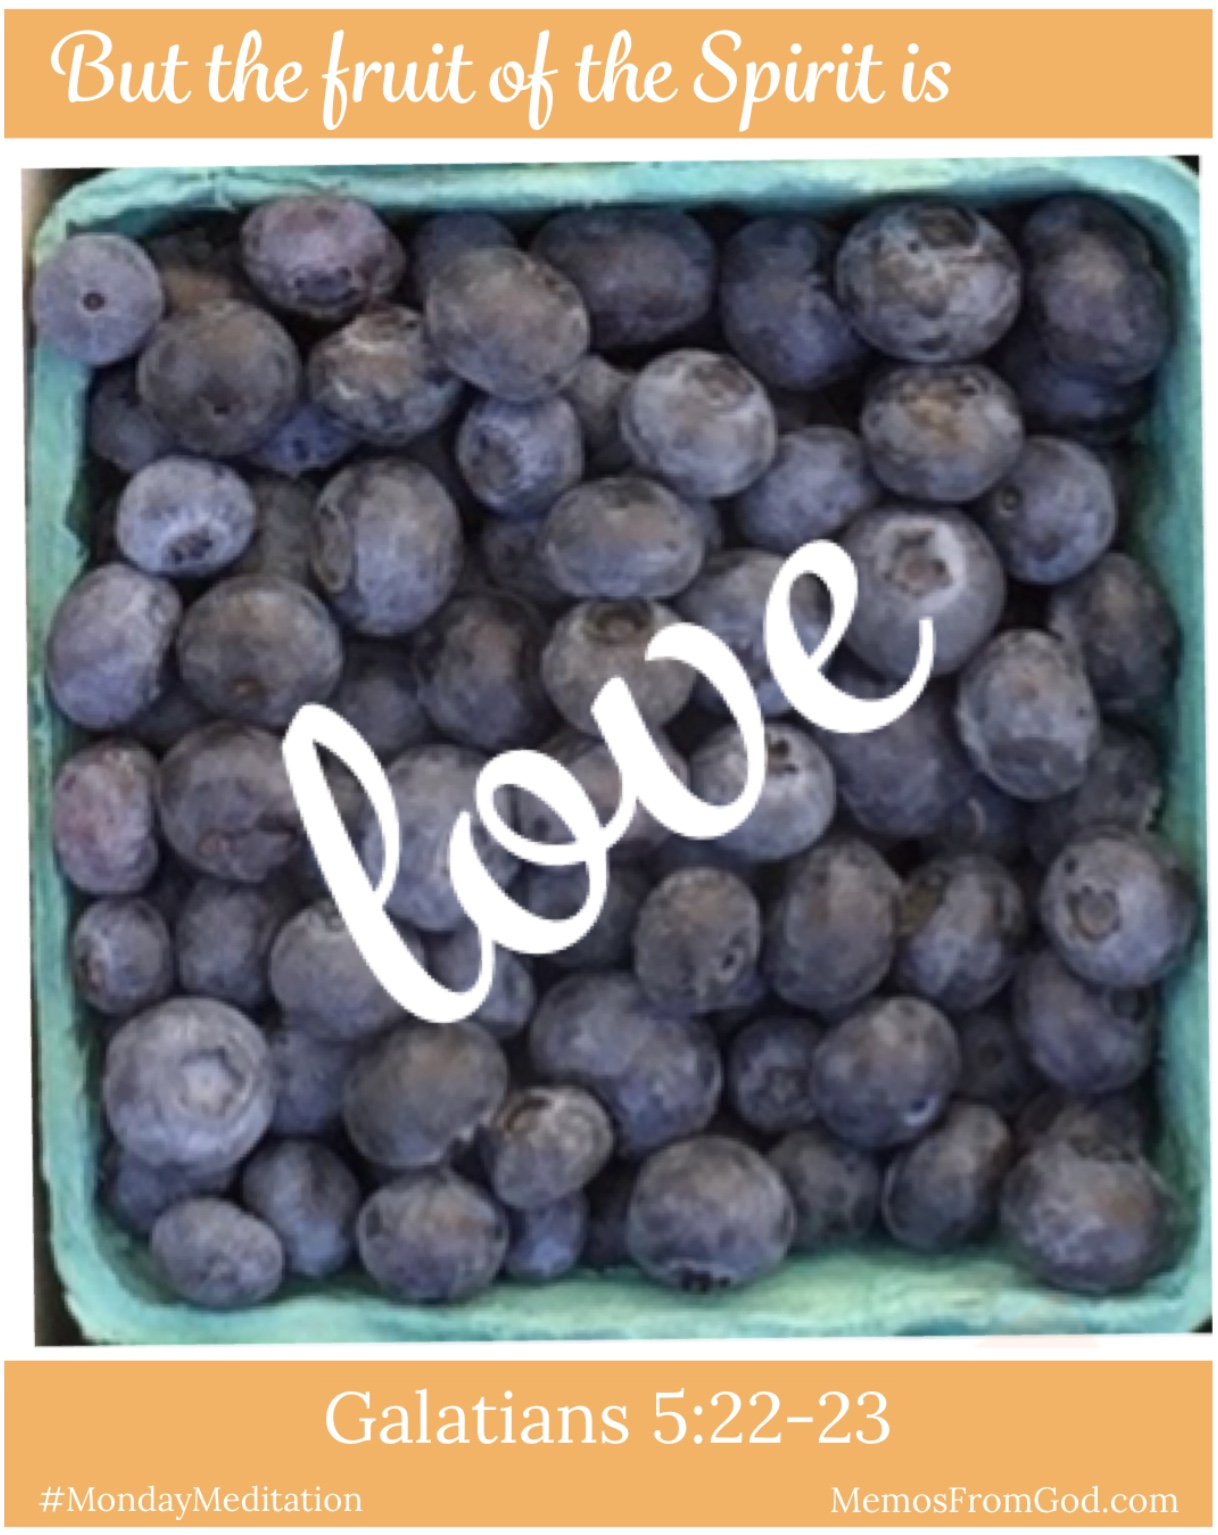 The top view of a pint box of blueberries. Caption: But the fruit of the Spirit is love. Galatians 5:22-23